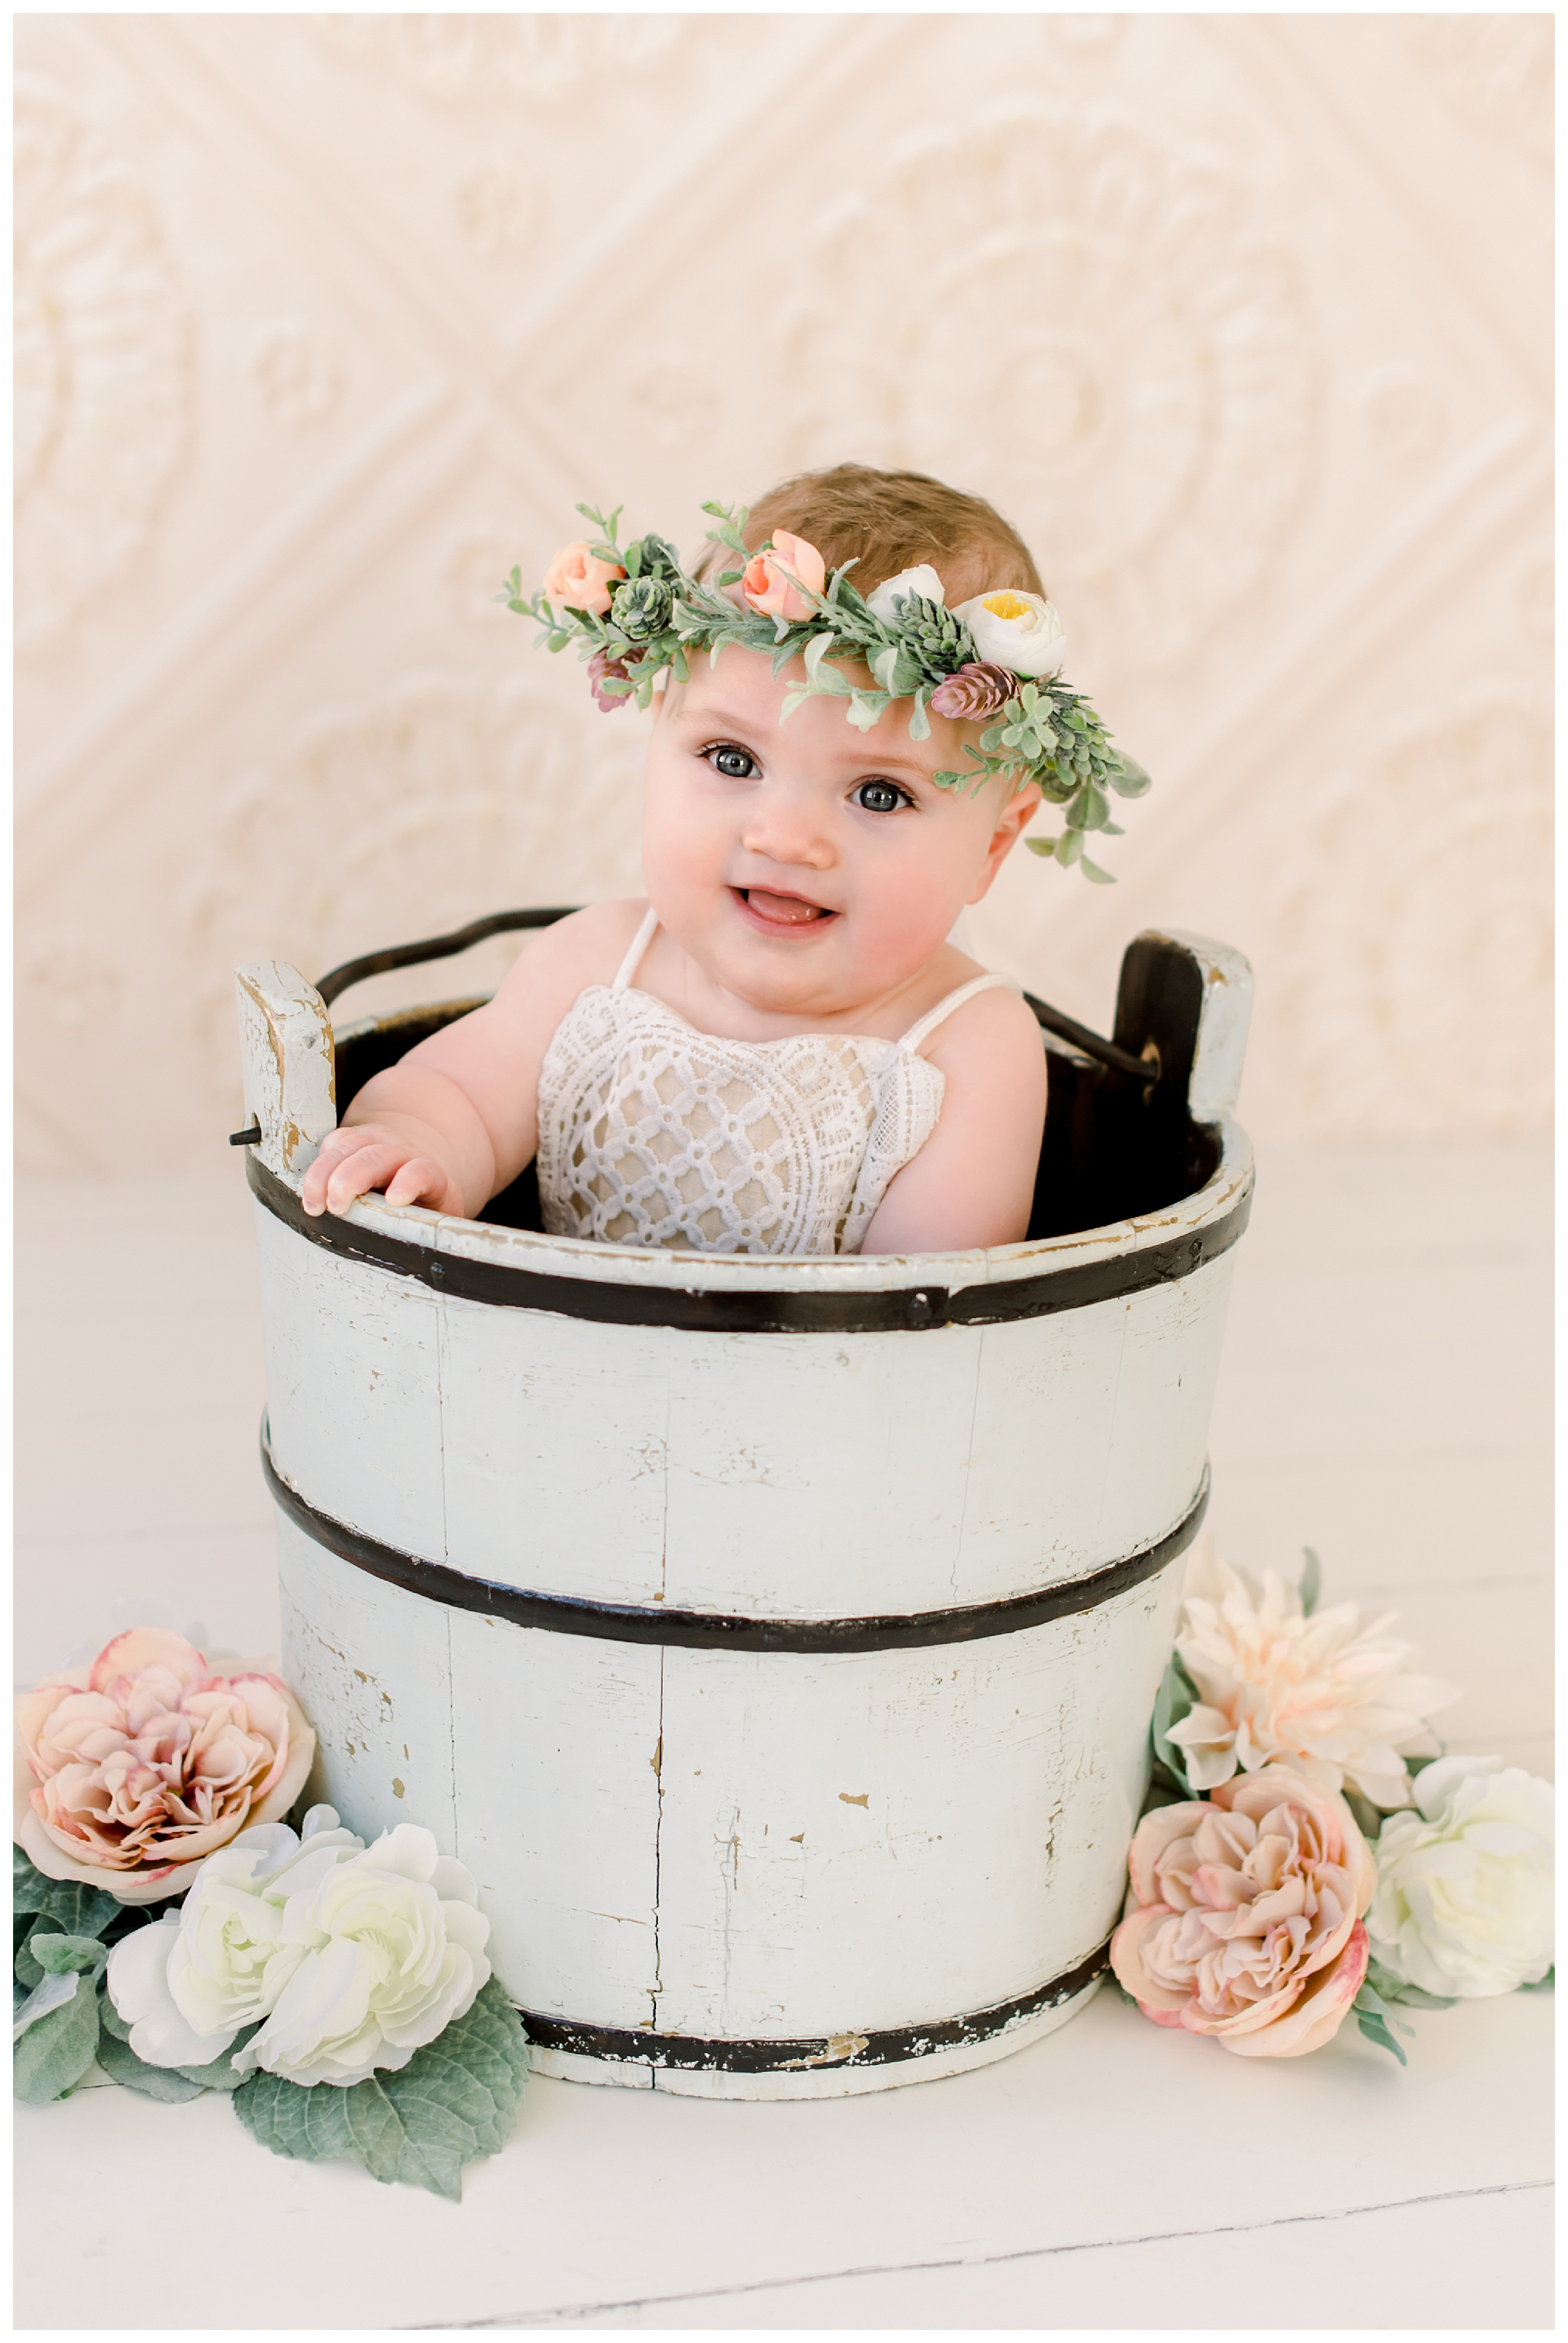 Maine Baby Photographer photographs 7 month old baby girl in Kittery Maine Studio at Sweet Light Portraits.